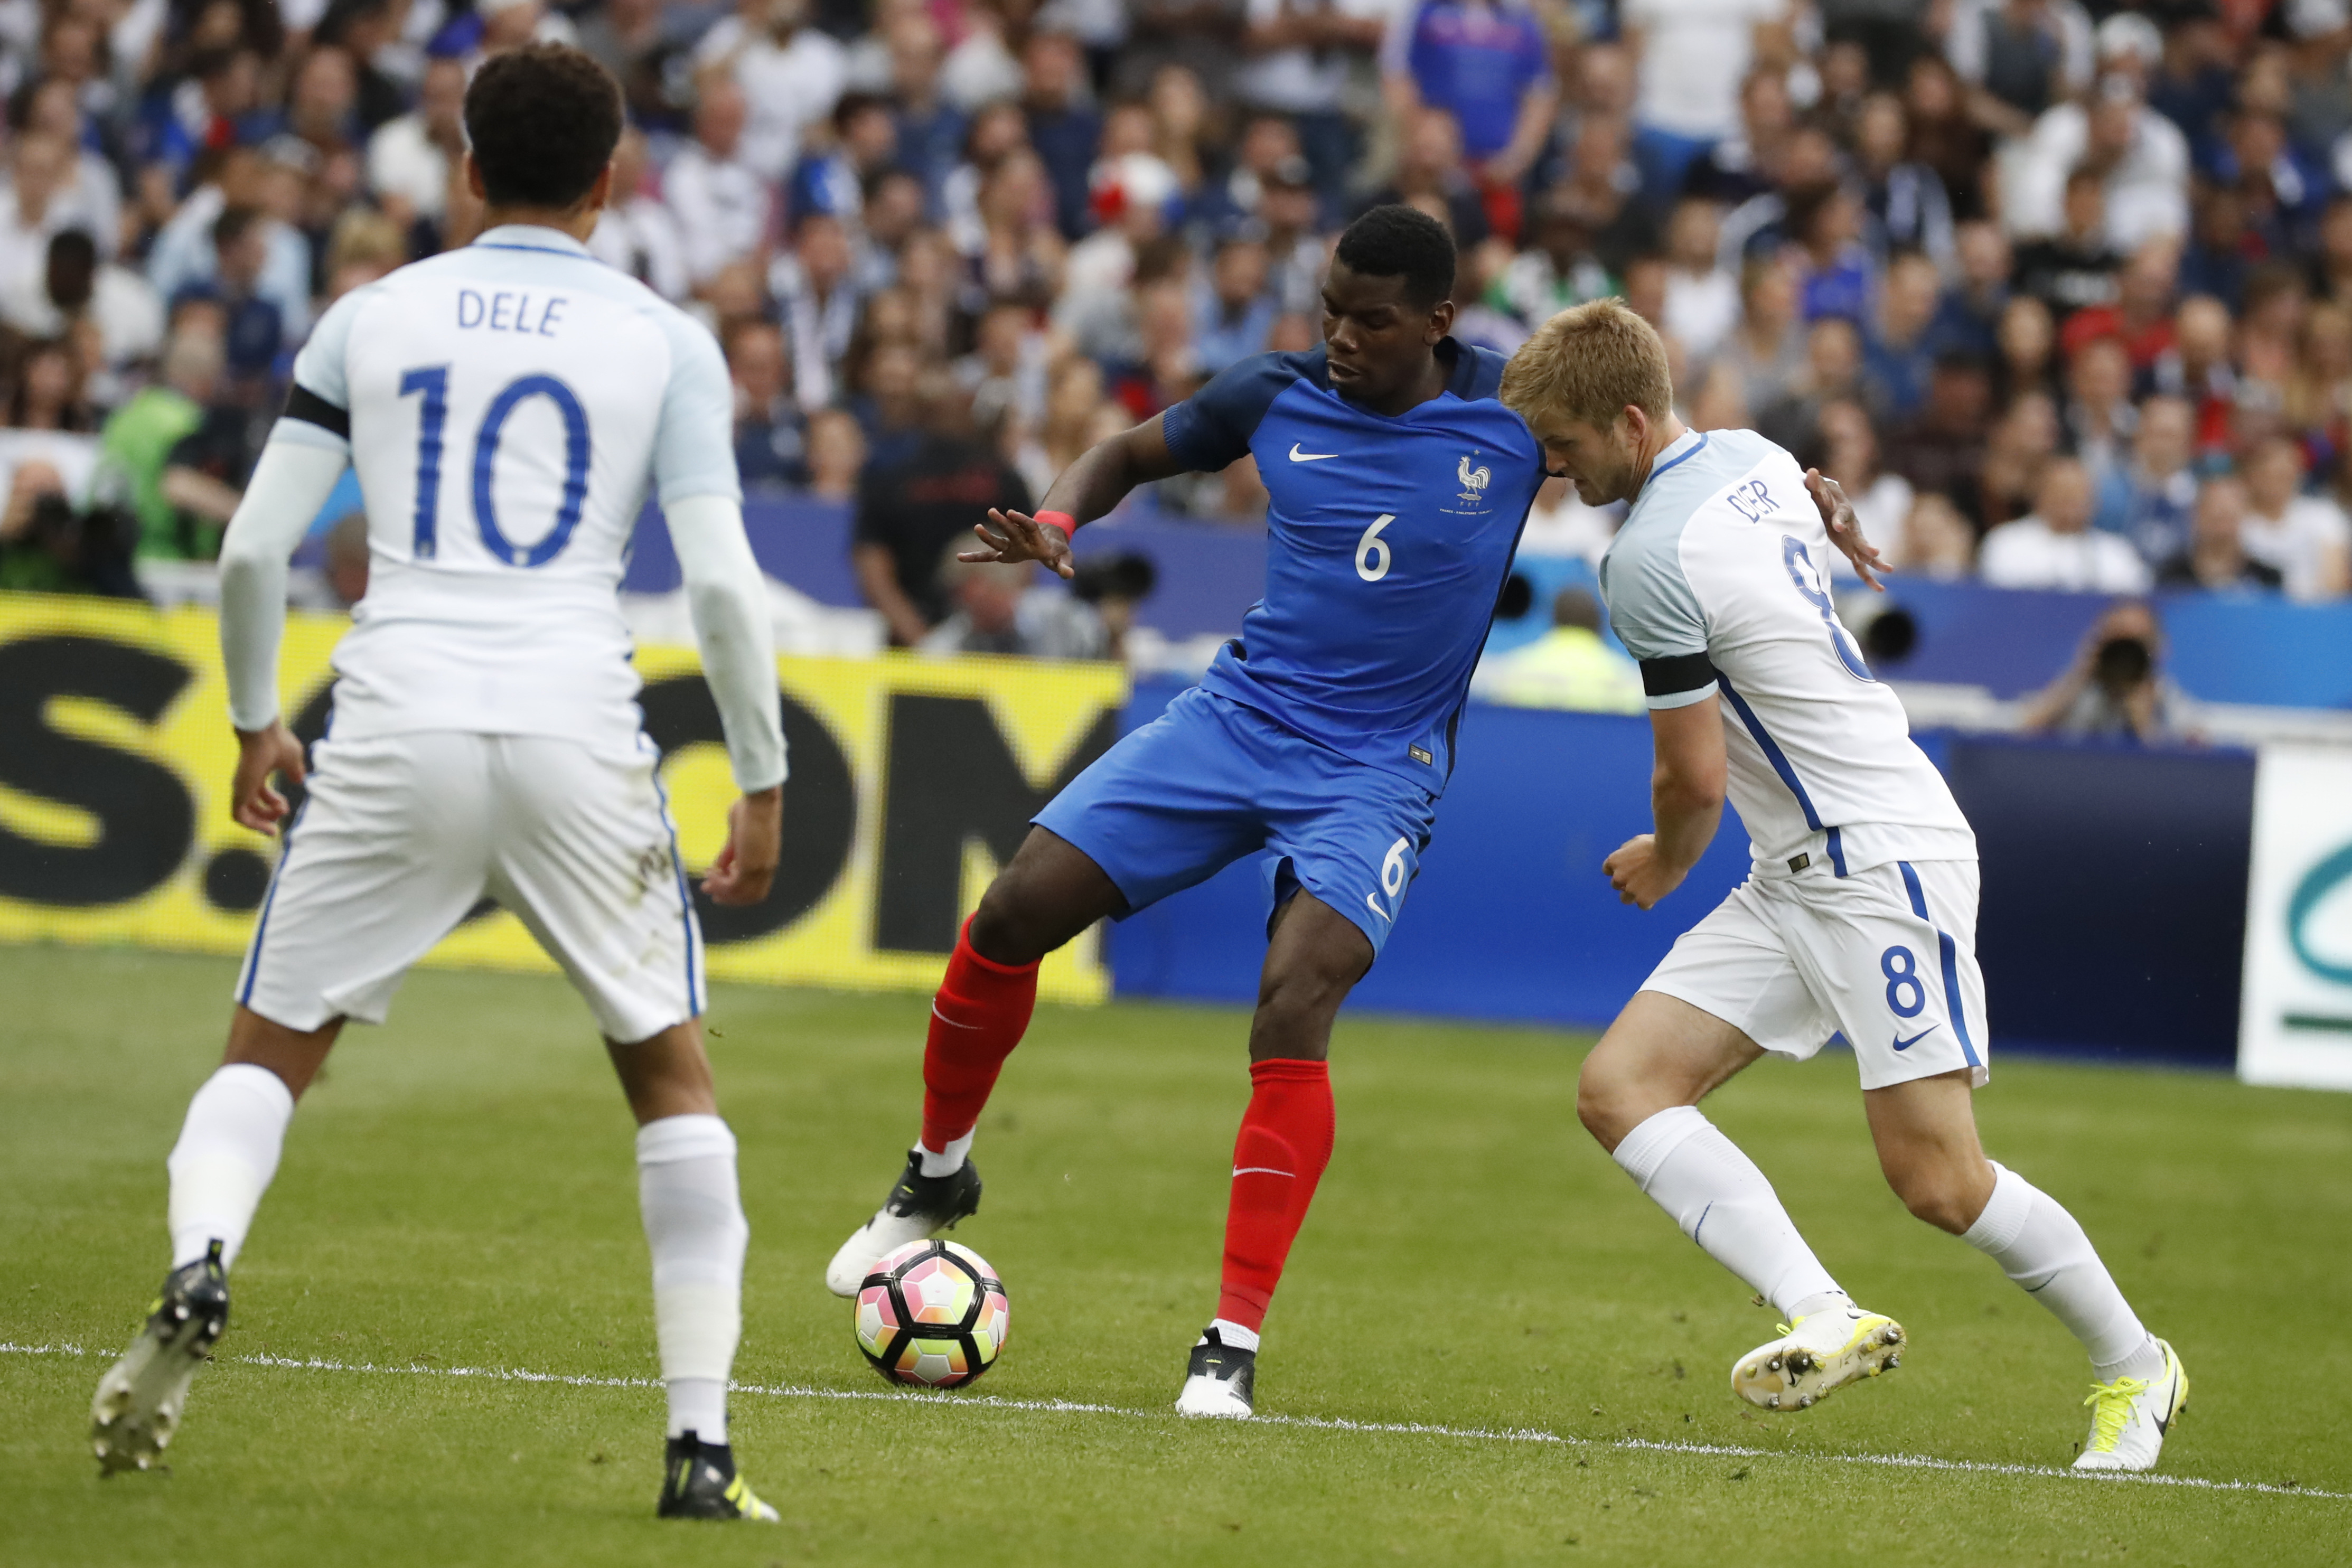 Pogba surprised by Mbappe, Dembele talent